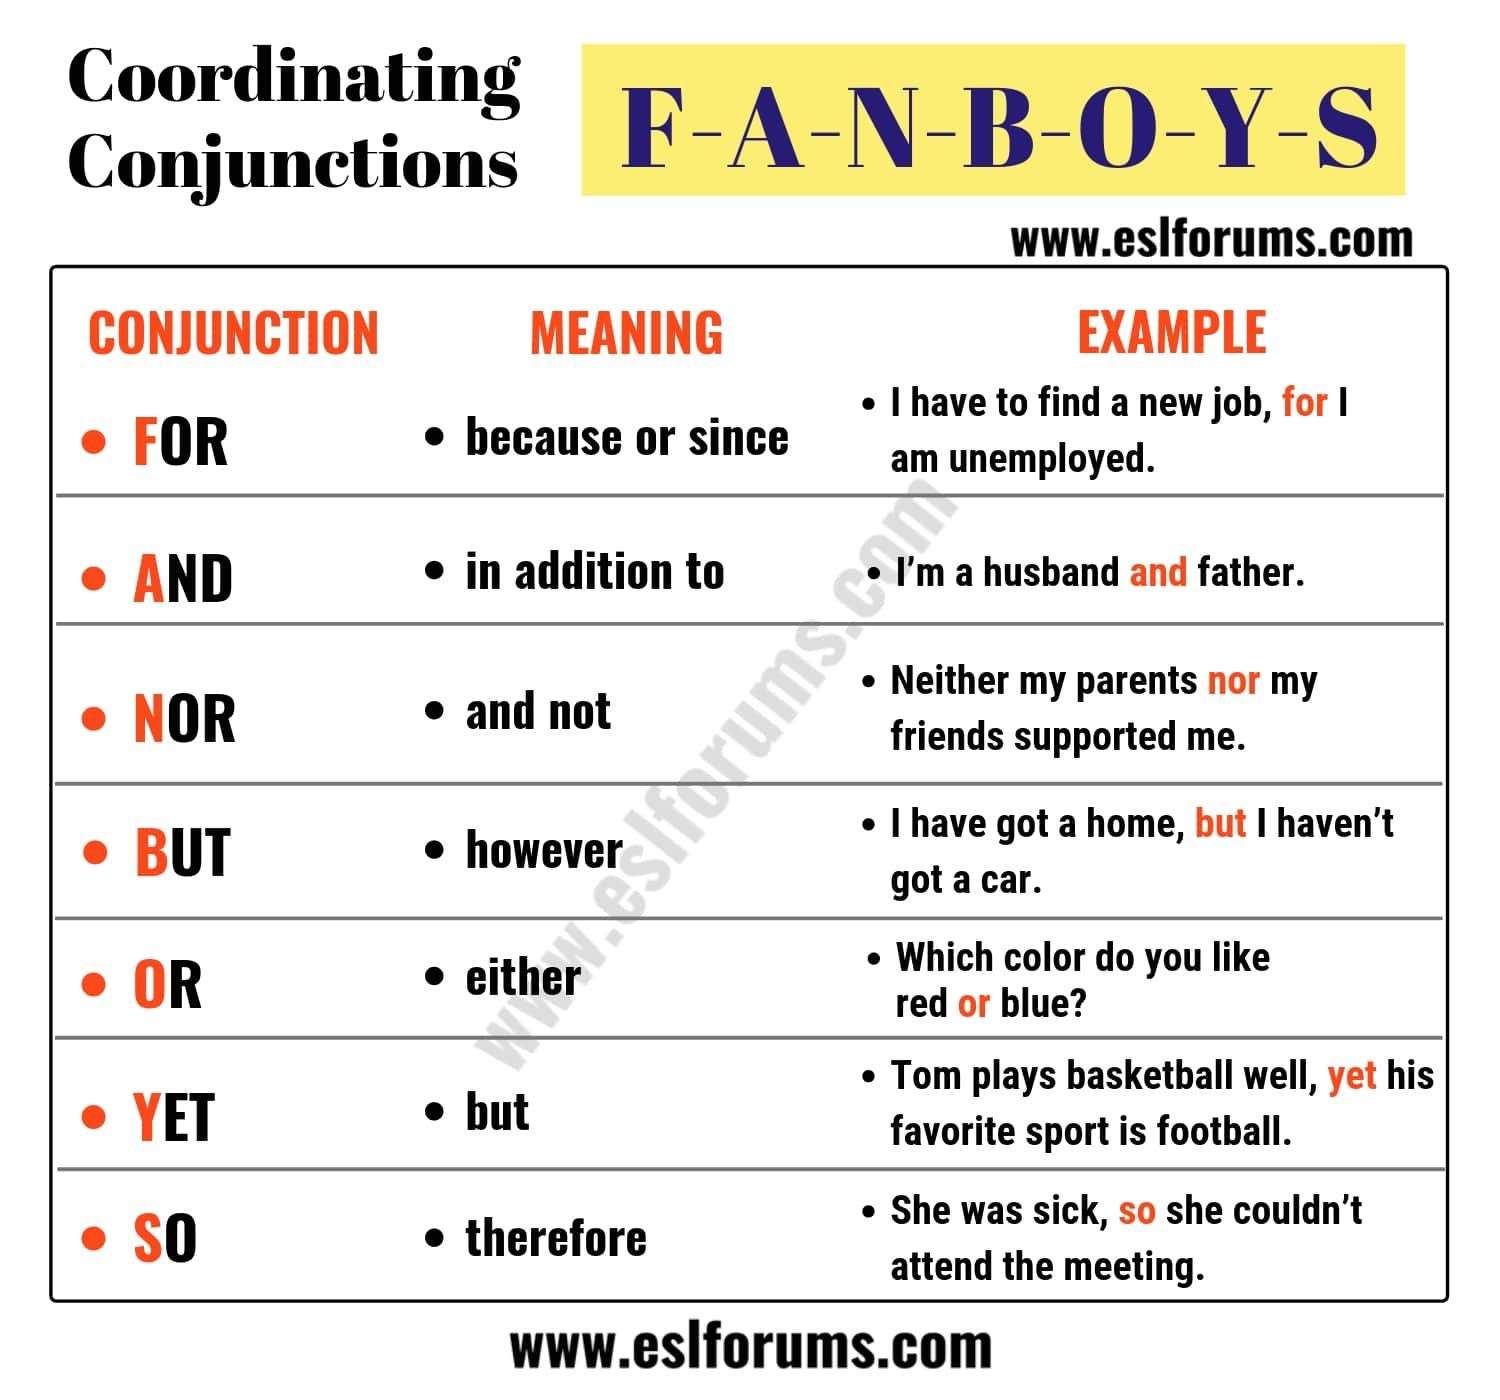 FANBOYS: 7 Important Coordinating Conjunctions - ESL Forums   English  vocabulary words [ 1400 x 1500 Pixel ]